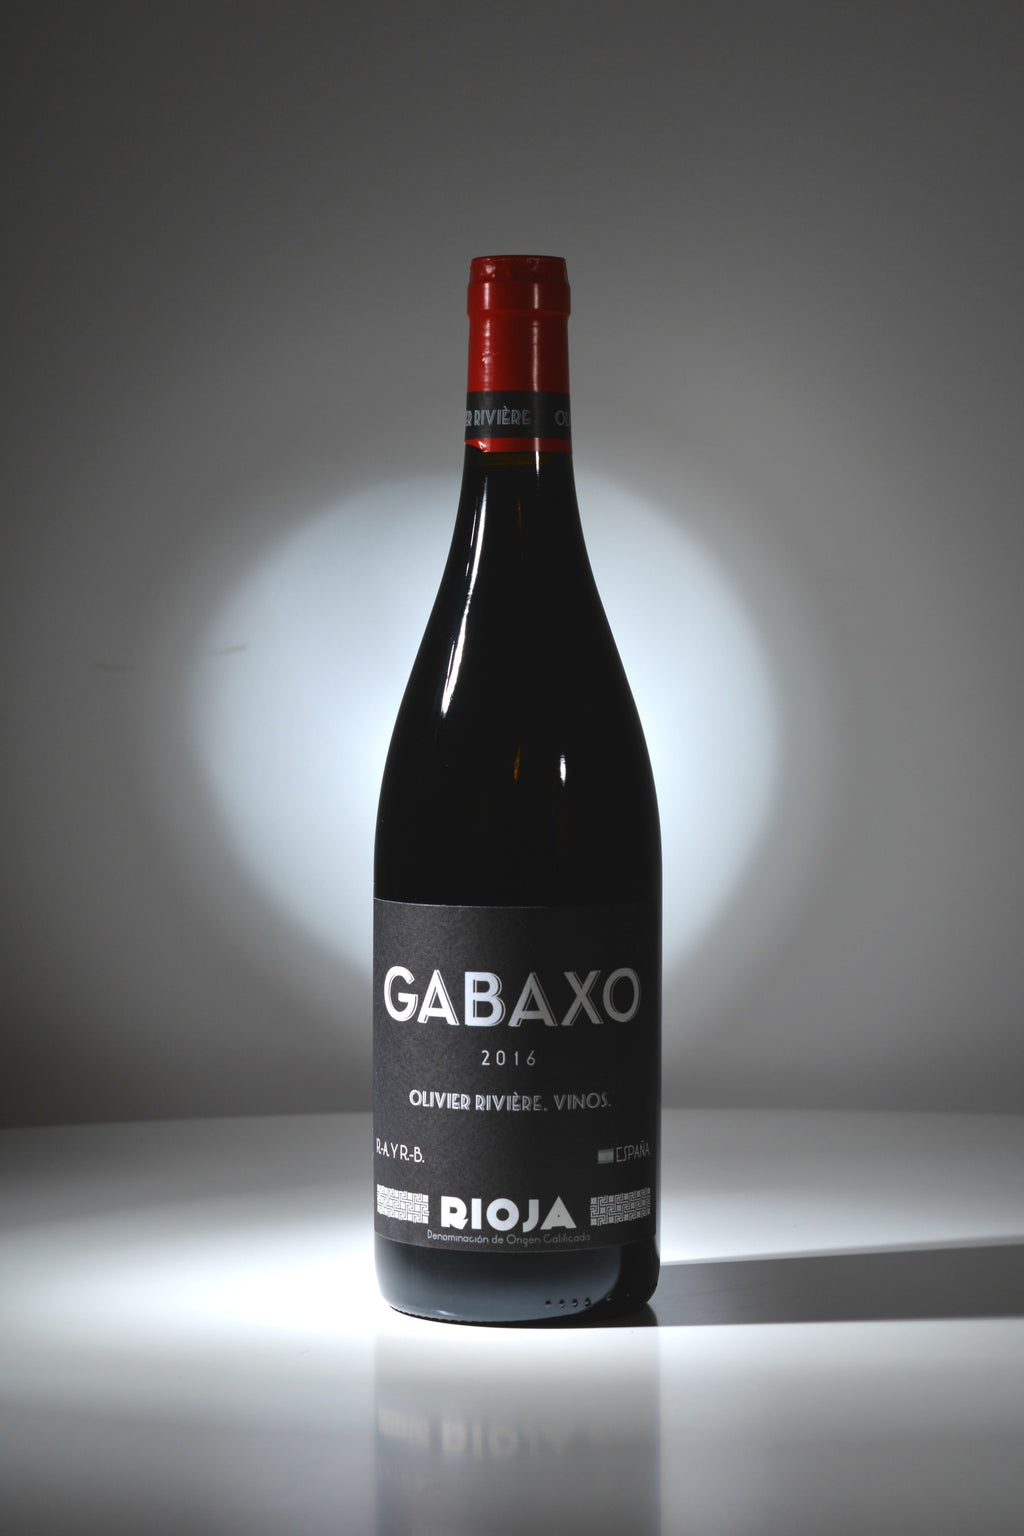 Gabaxo 2016 - The Royal Bottle